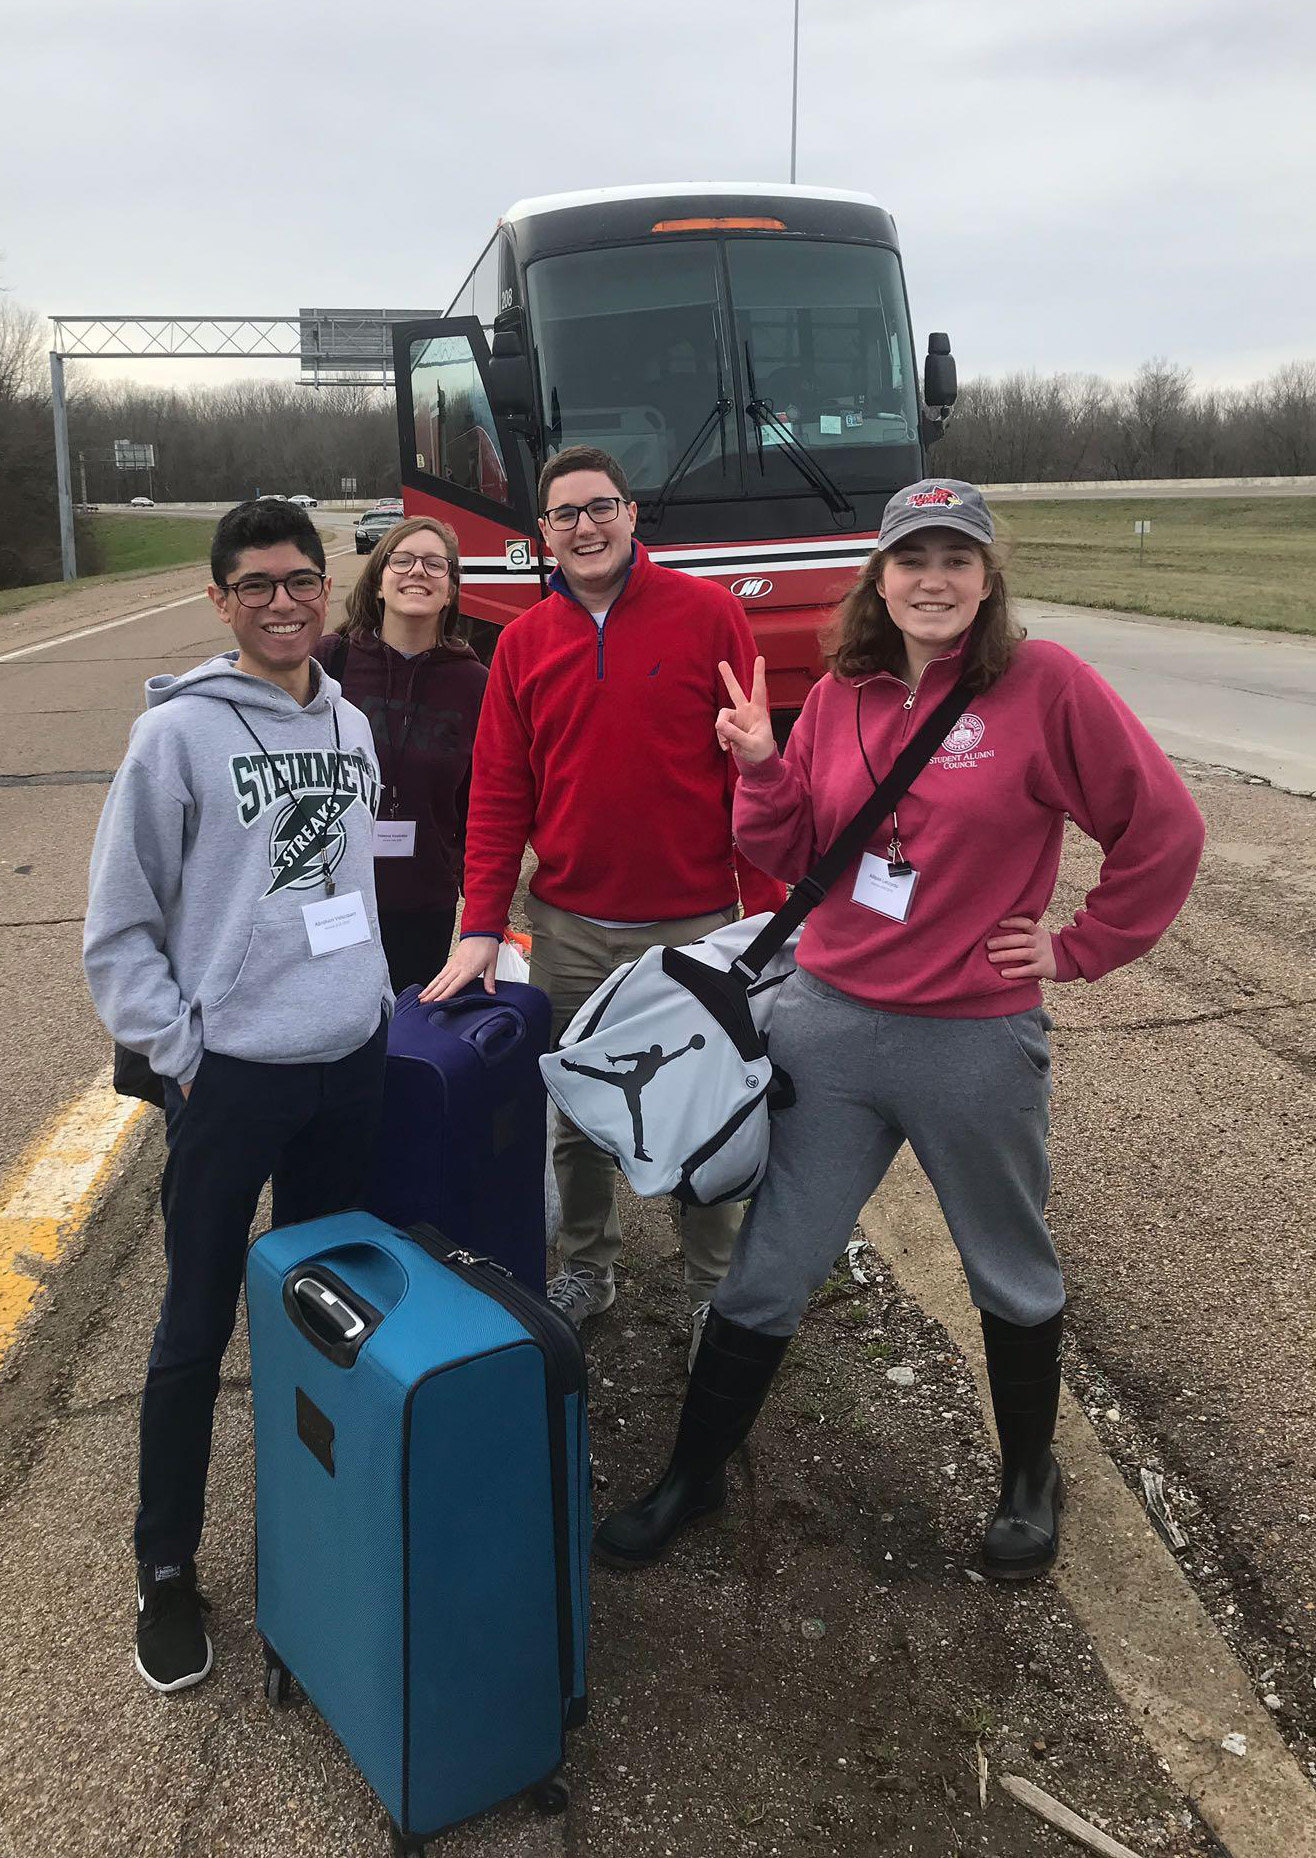 Students in front of a charter bus